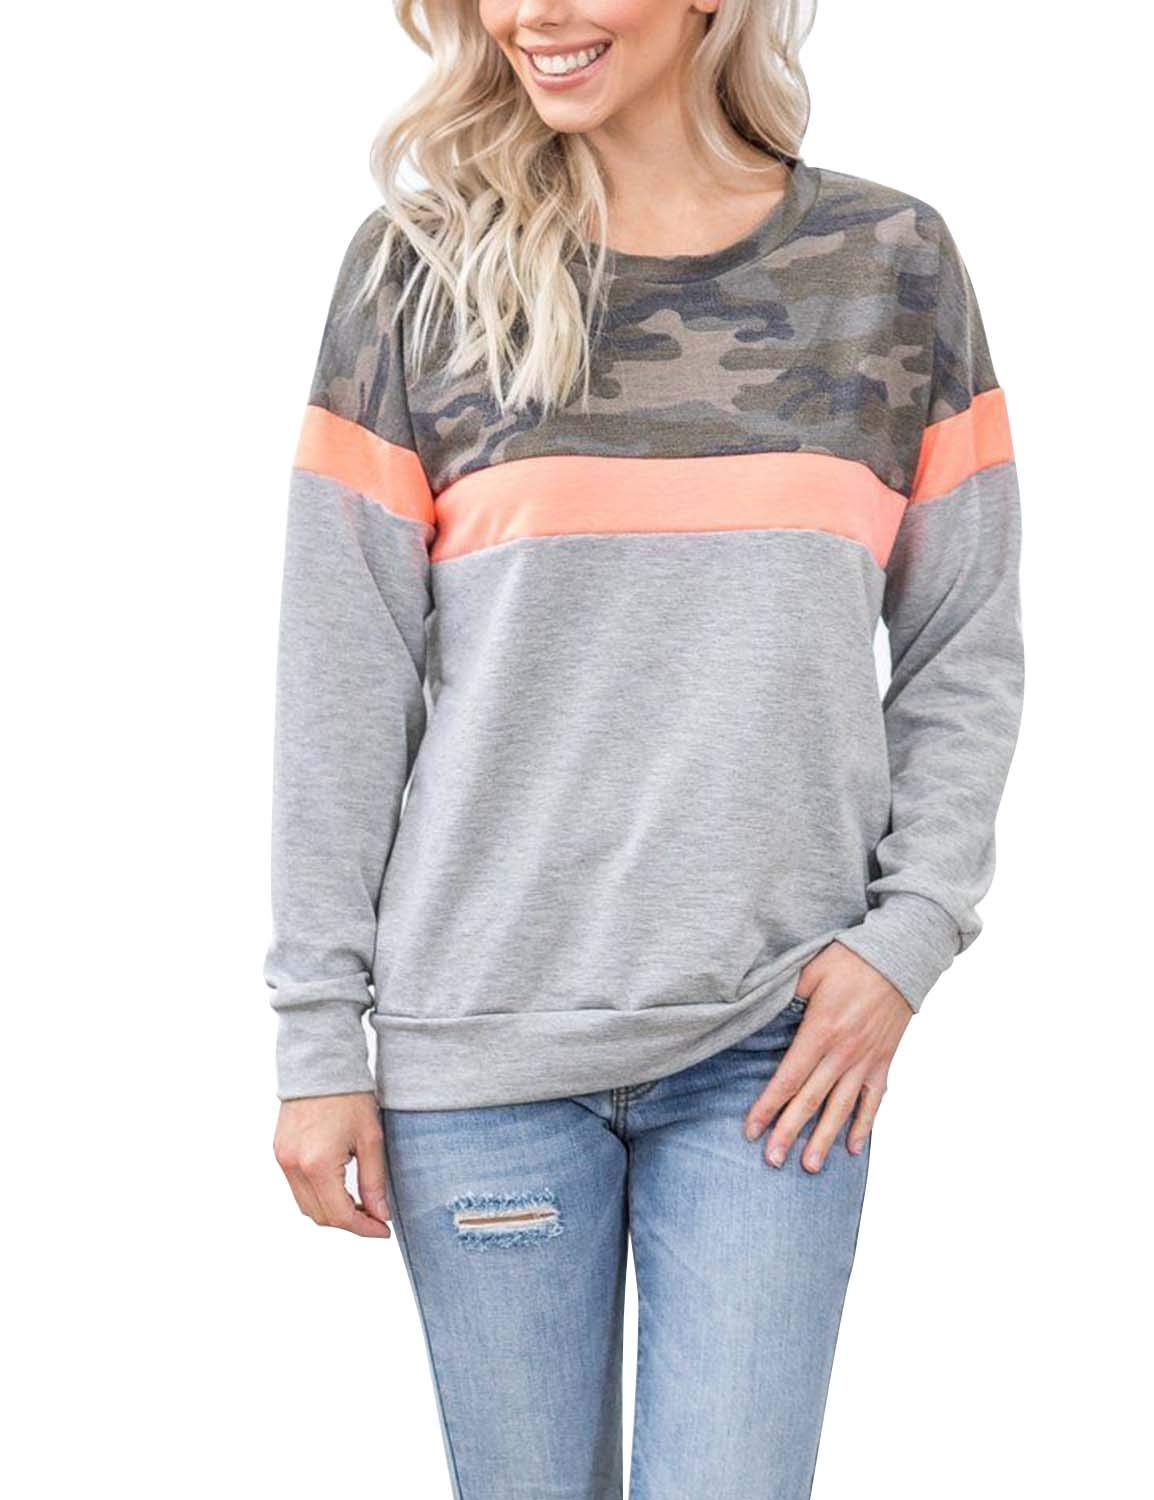 BMJL Women's Round Neck Basic Top Long Sleeved Sweater Contrast Color Patchwork amouflage Printing